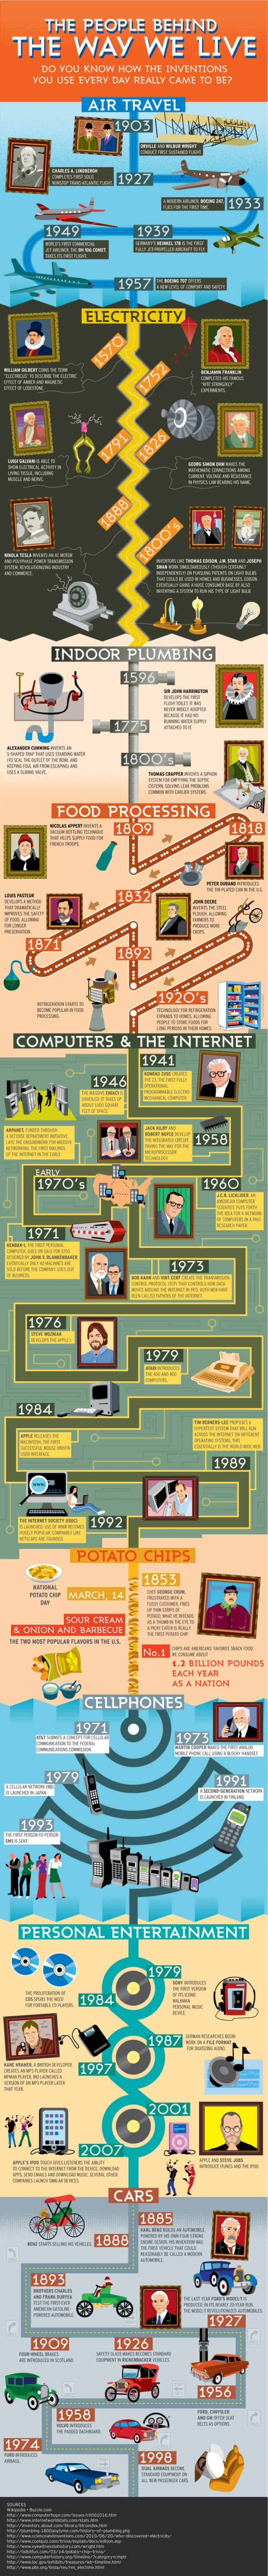 Infographic about how our everyday stuff came to be.